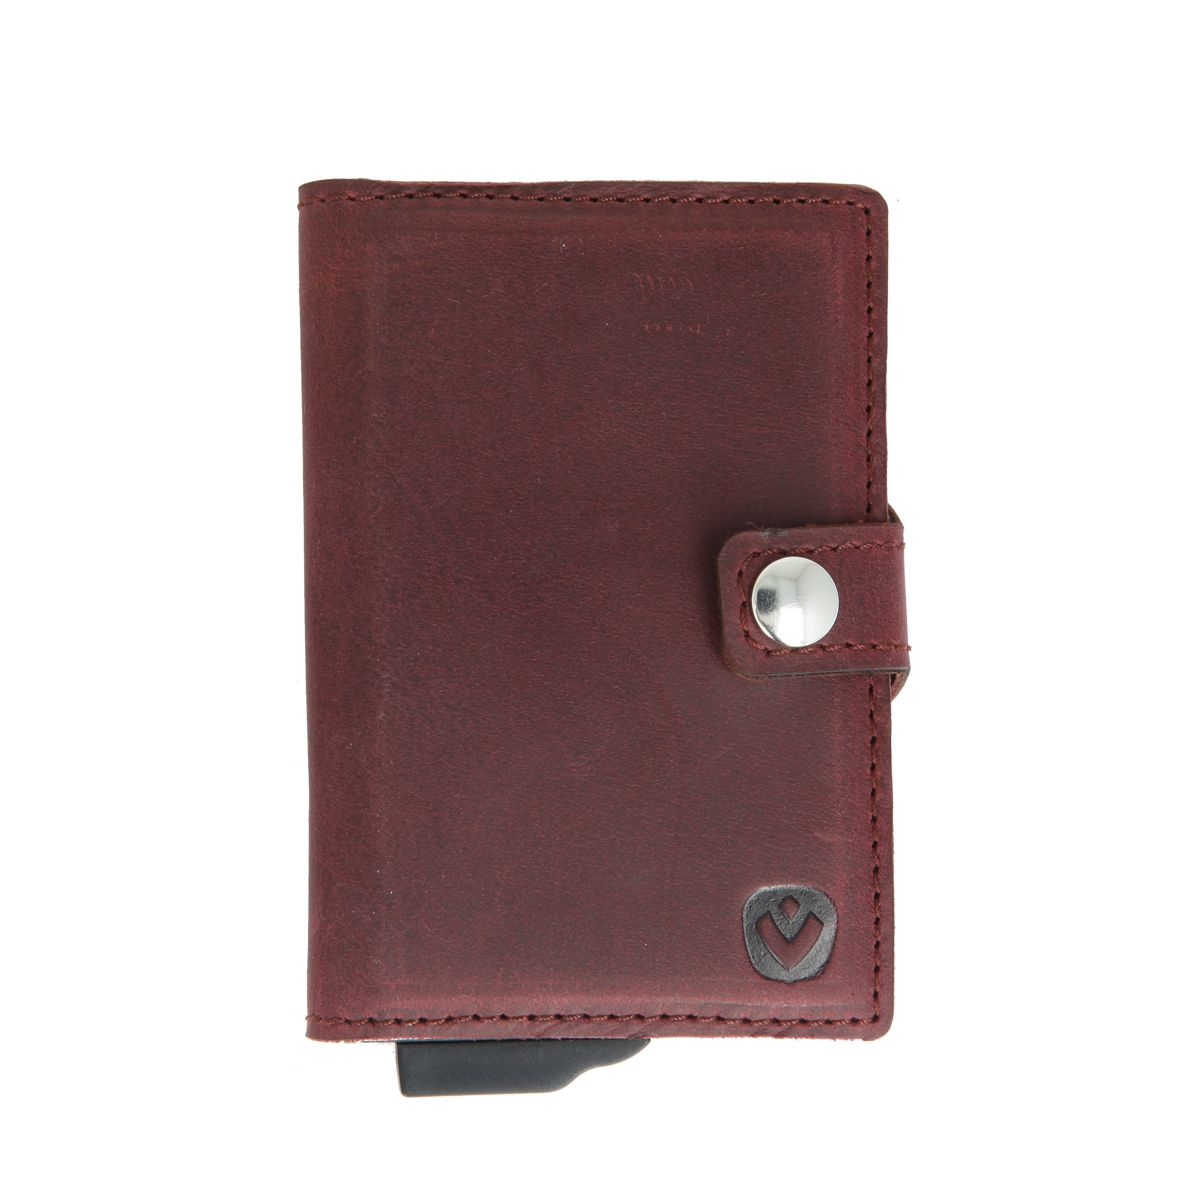 card case plus wallet vintage burgundy